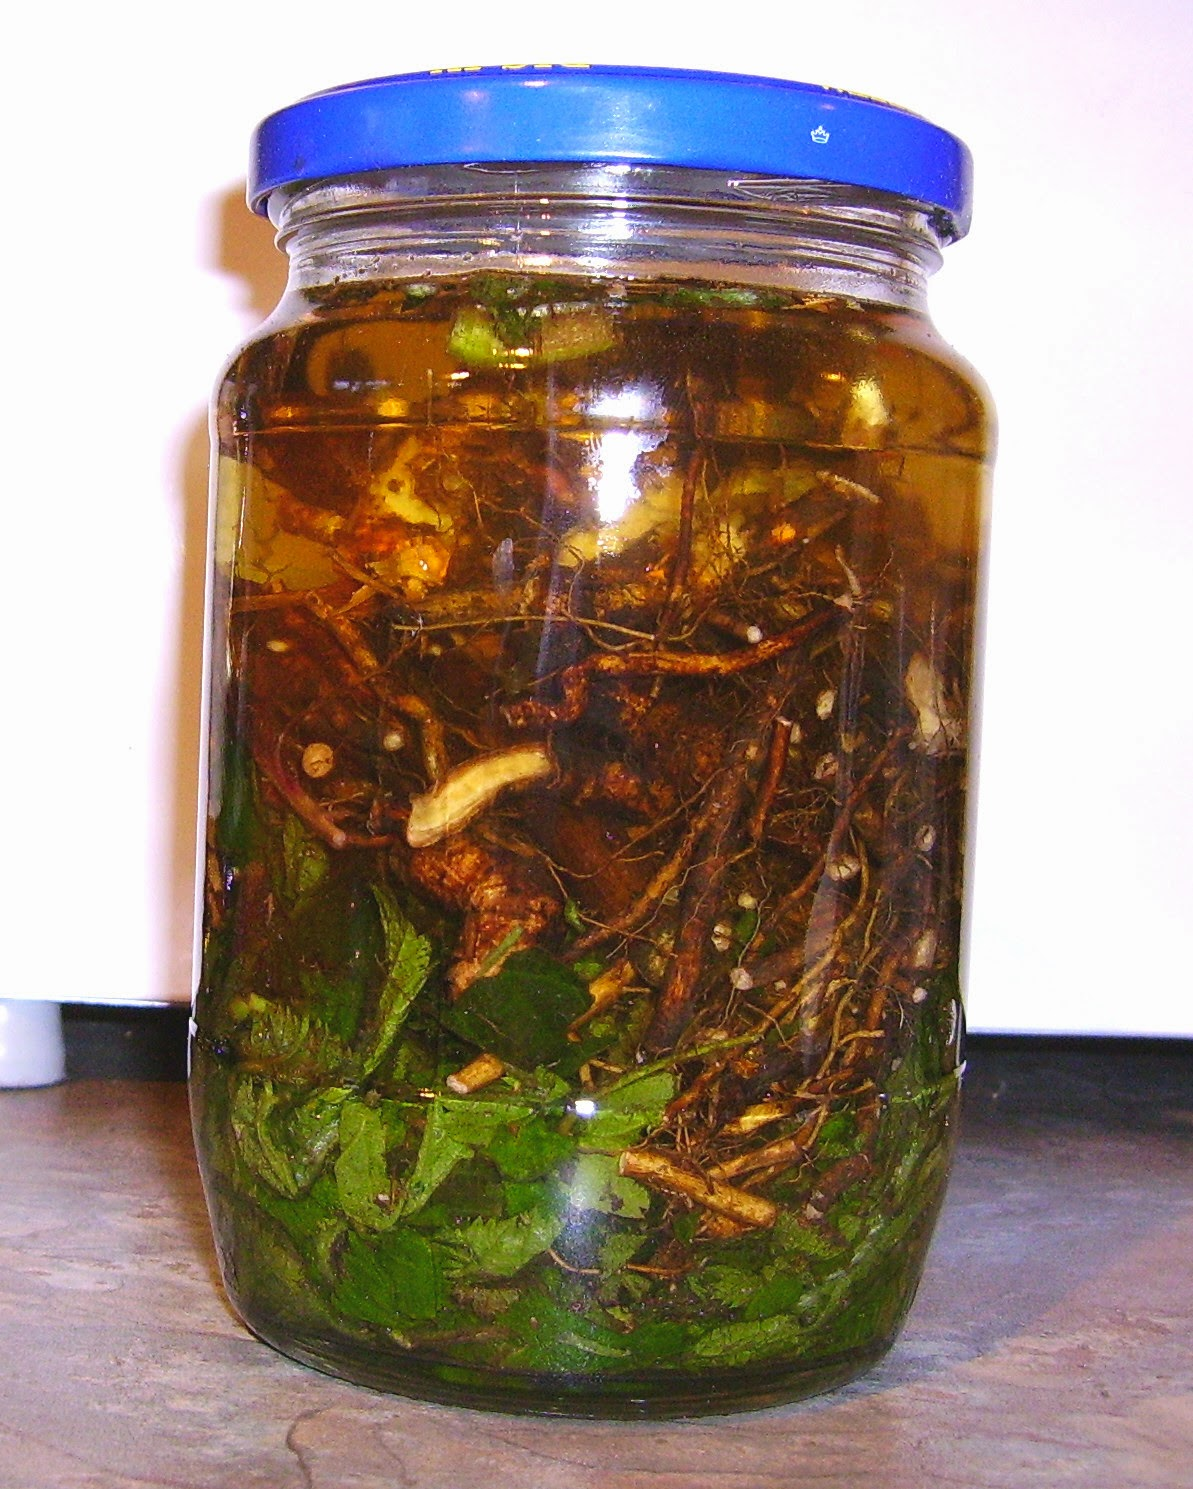 Bramble root and leaf vinegar